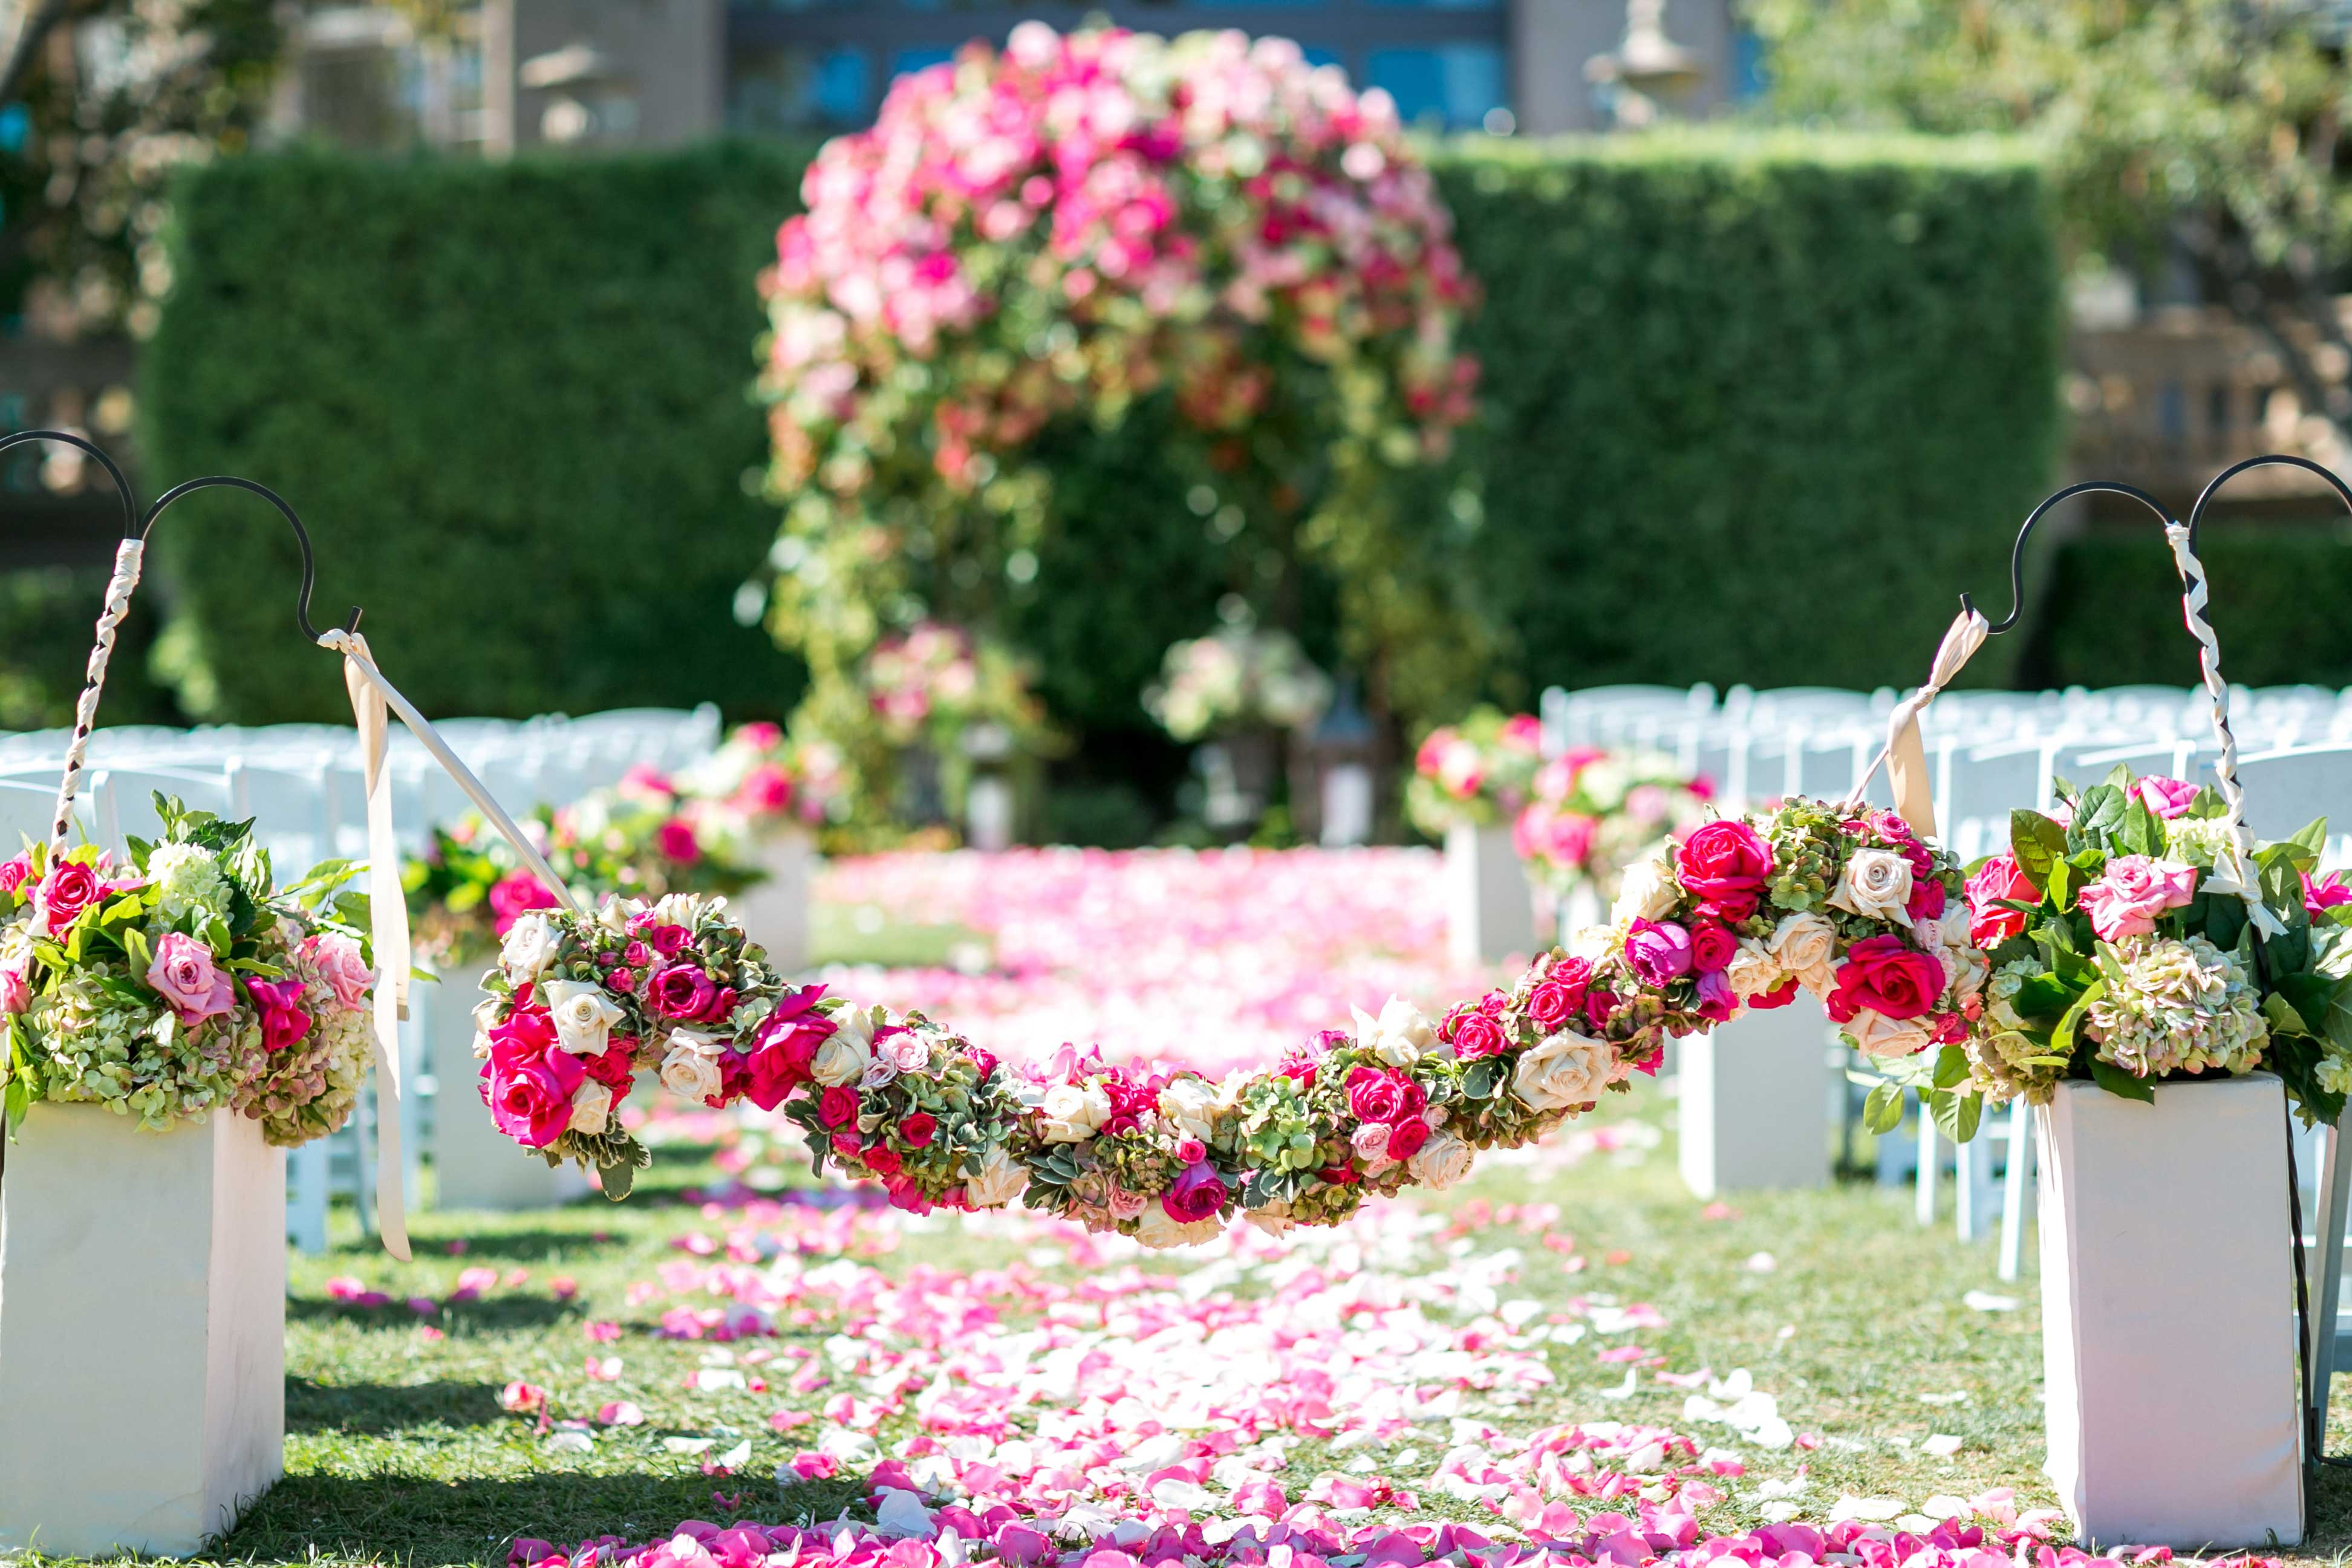 Outdoor wedding ceremony vow exchange with bright pink flowers